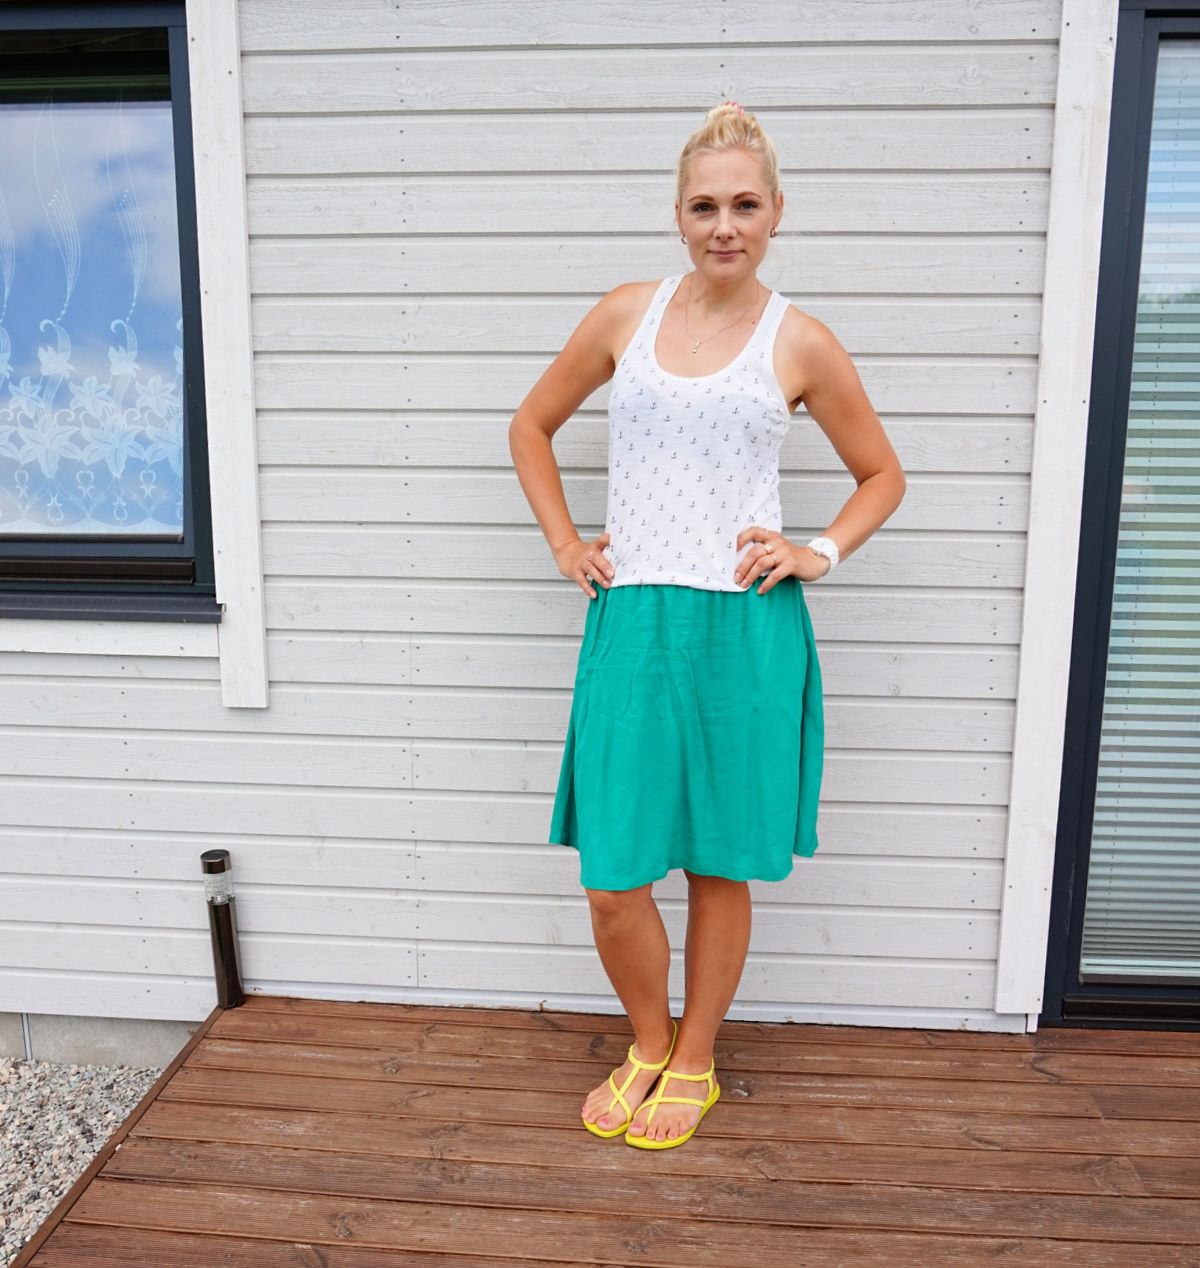 Simple summer outfit green skirt and white anchor print racerback tank top, yellow sandals.